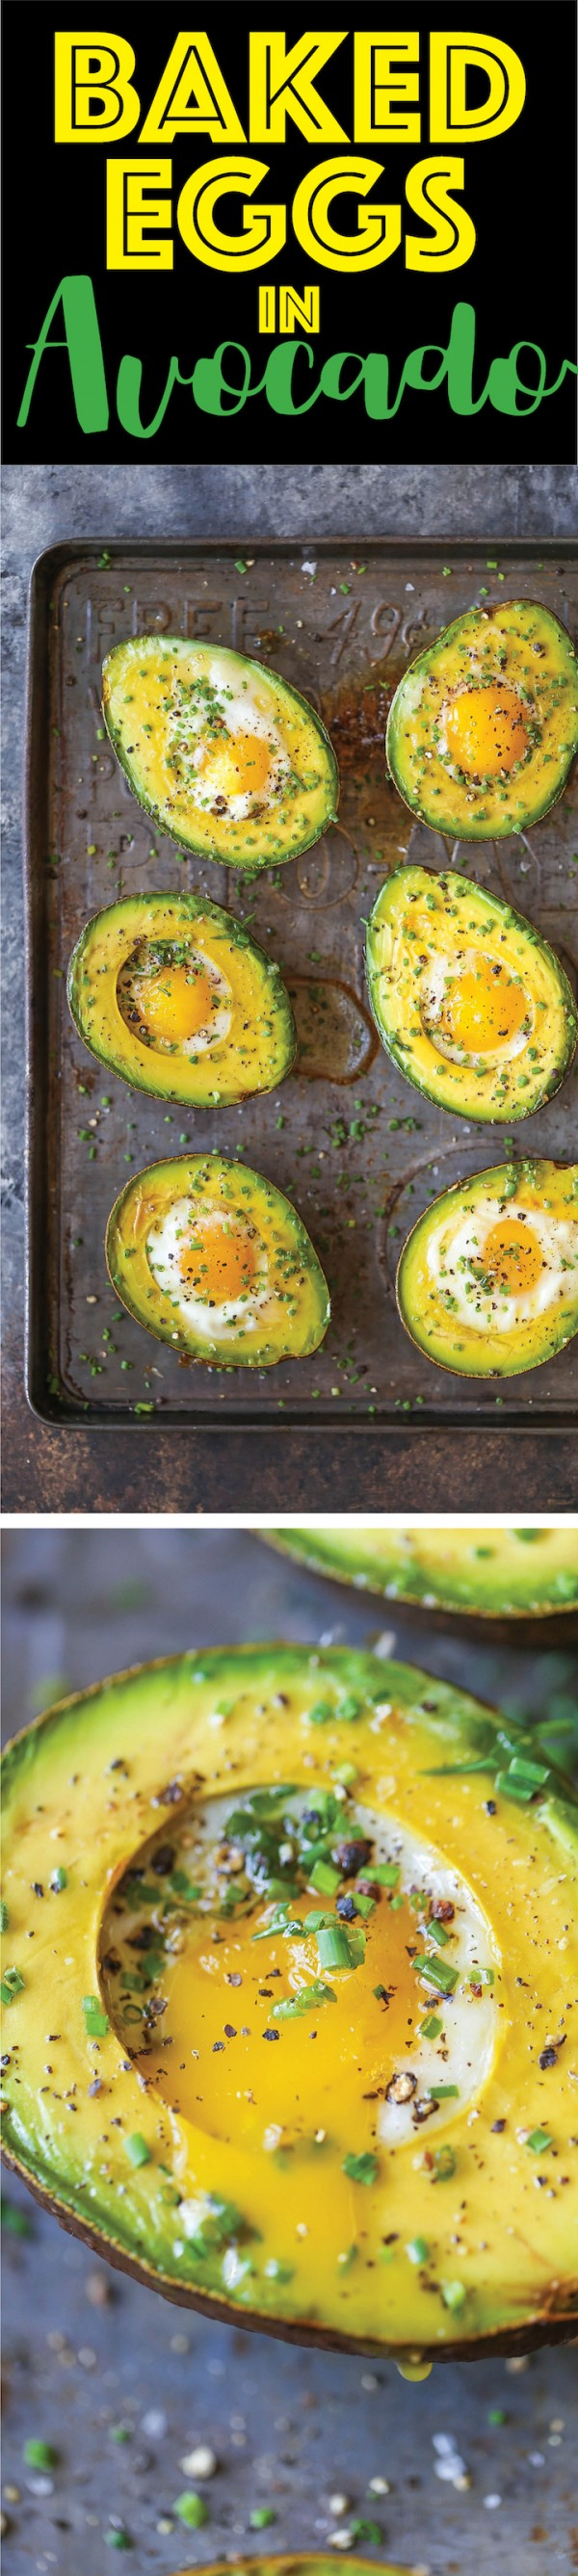 Get the recipe Baked Eggs in Avocado @recipes_to_go